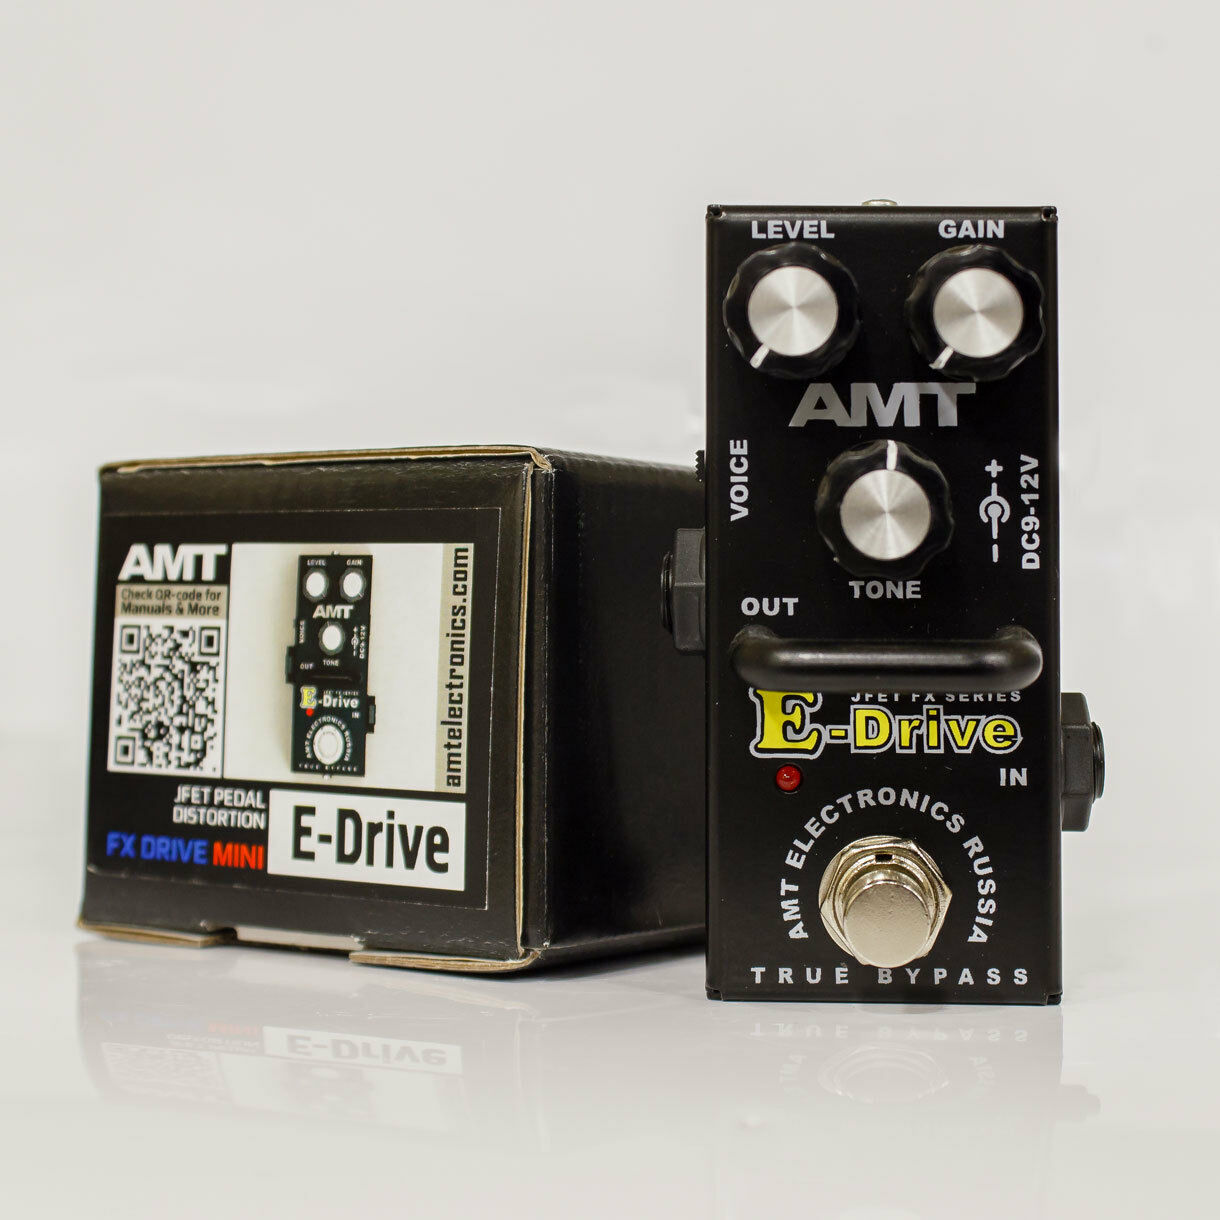 AMT Electronics E-Drive mini – JFET distortion pedal